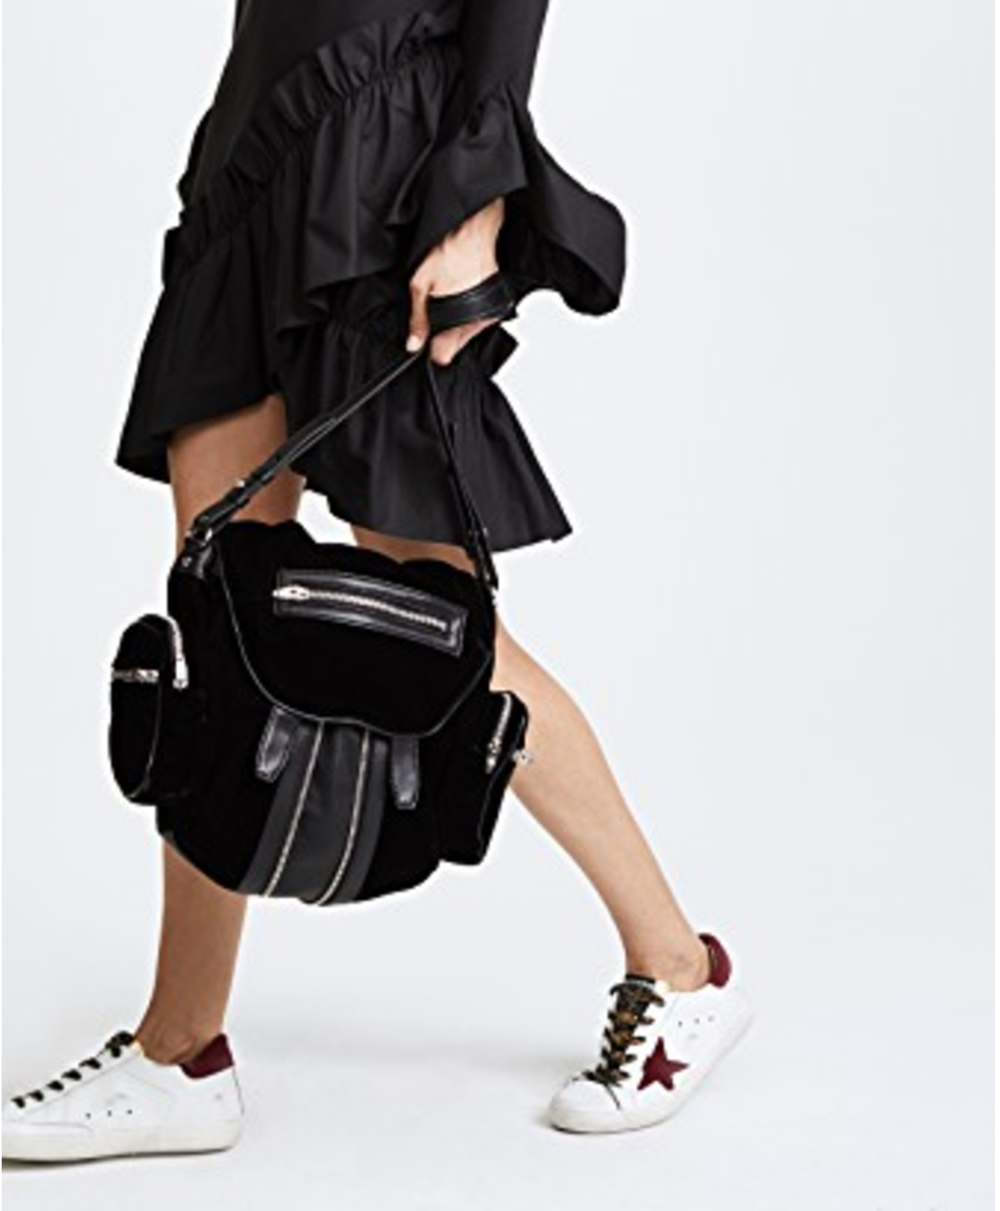 Image courtesy of Shopbop. Find this Alexander Wang Bag, here. Golden Goose sneakers, here.